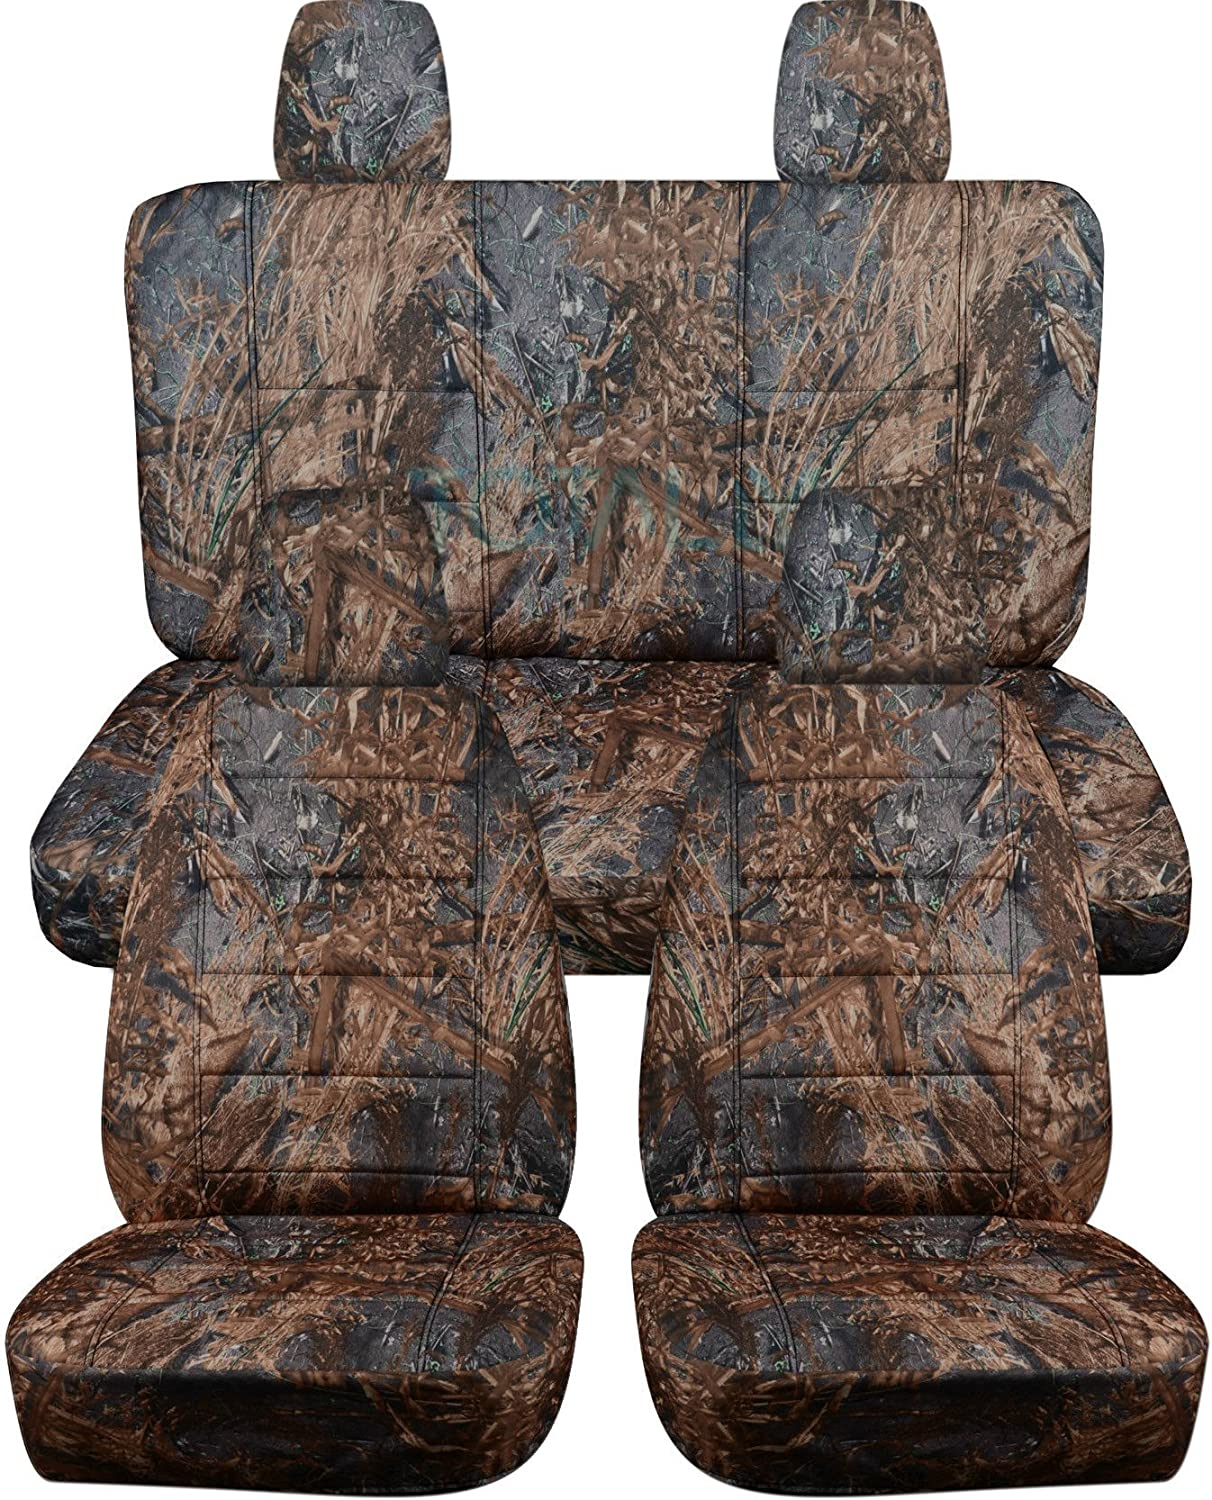 Totally Covers Compatible with 2018-2020 Jeep Wrangler JL Camo Seat Covers: Reeds Camouflage - Full Set: Front & Rear (19 Prints) 2-Door/4-Door Solid/Split Bench Back w/wo Armrest/Headrest